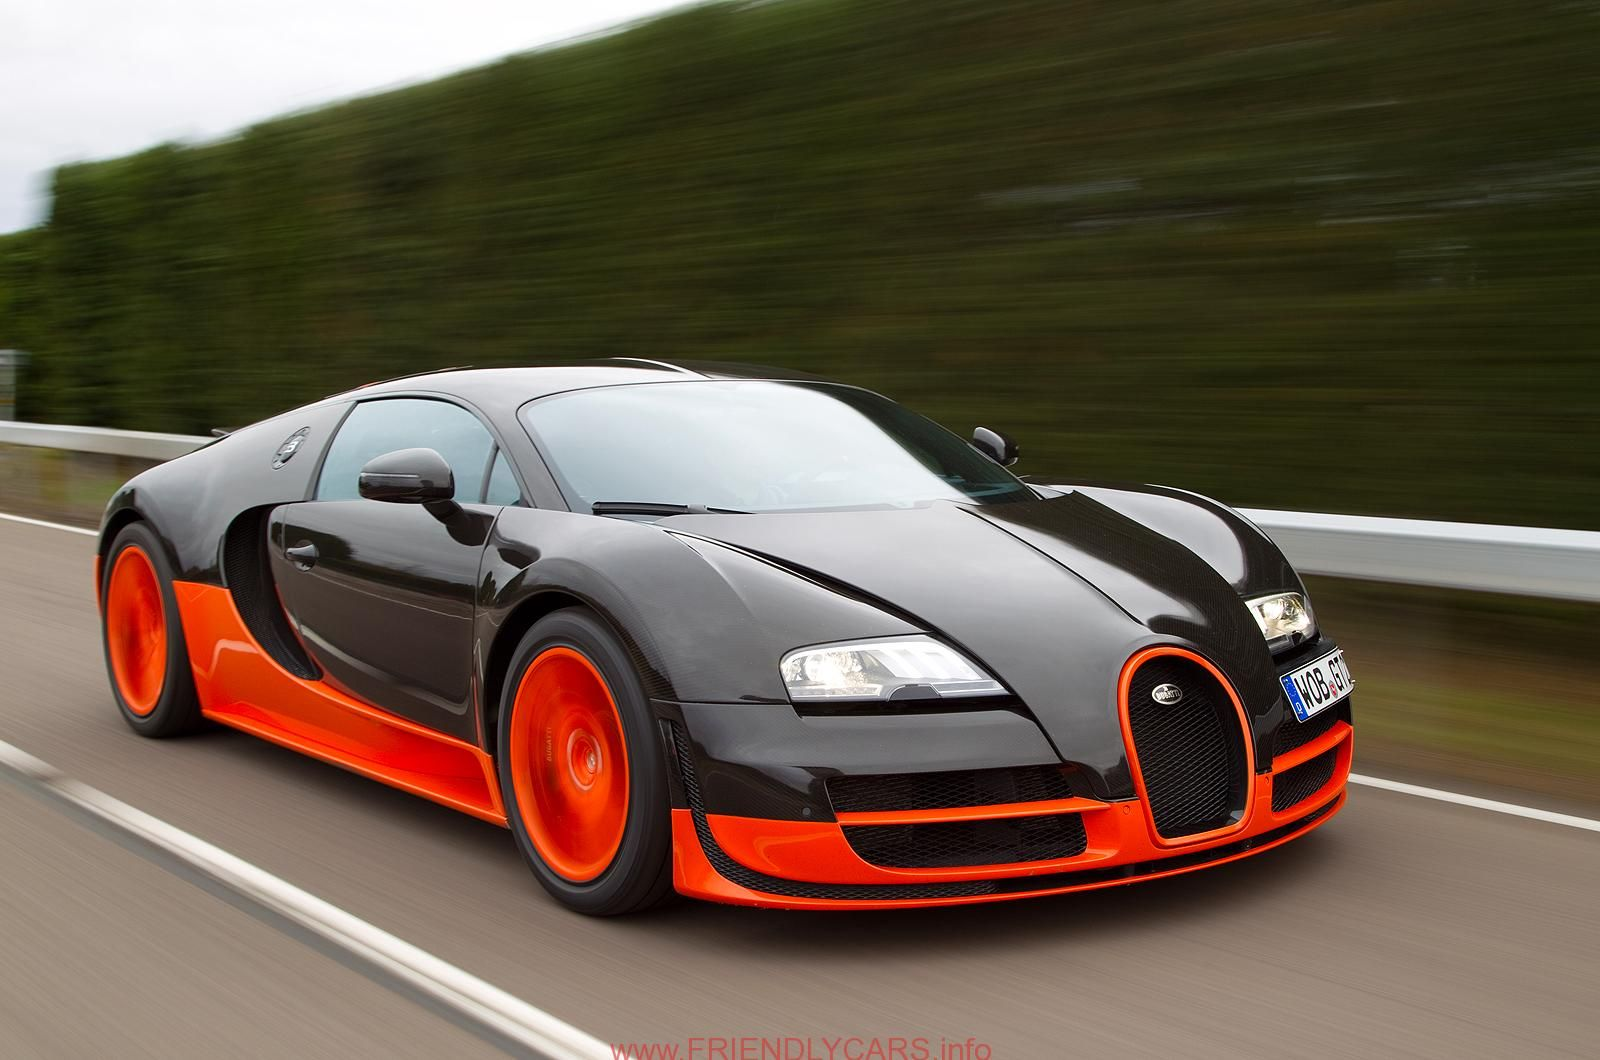 Genial Nice Bugatti Veyron Purple And Black Image Hd Bugatti Veyron Super Sport  Gold And Black Engine